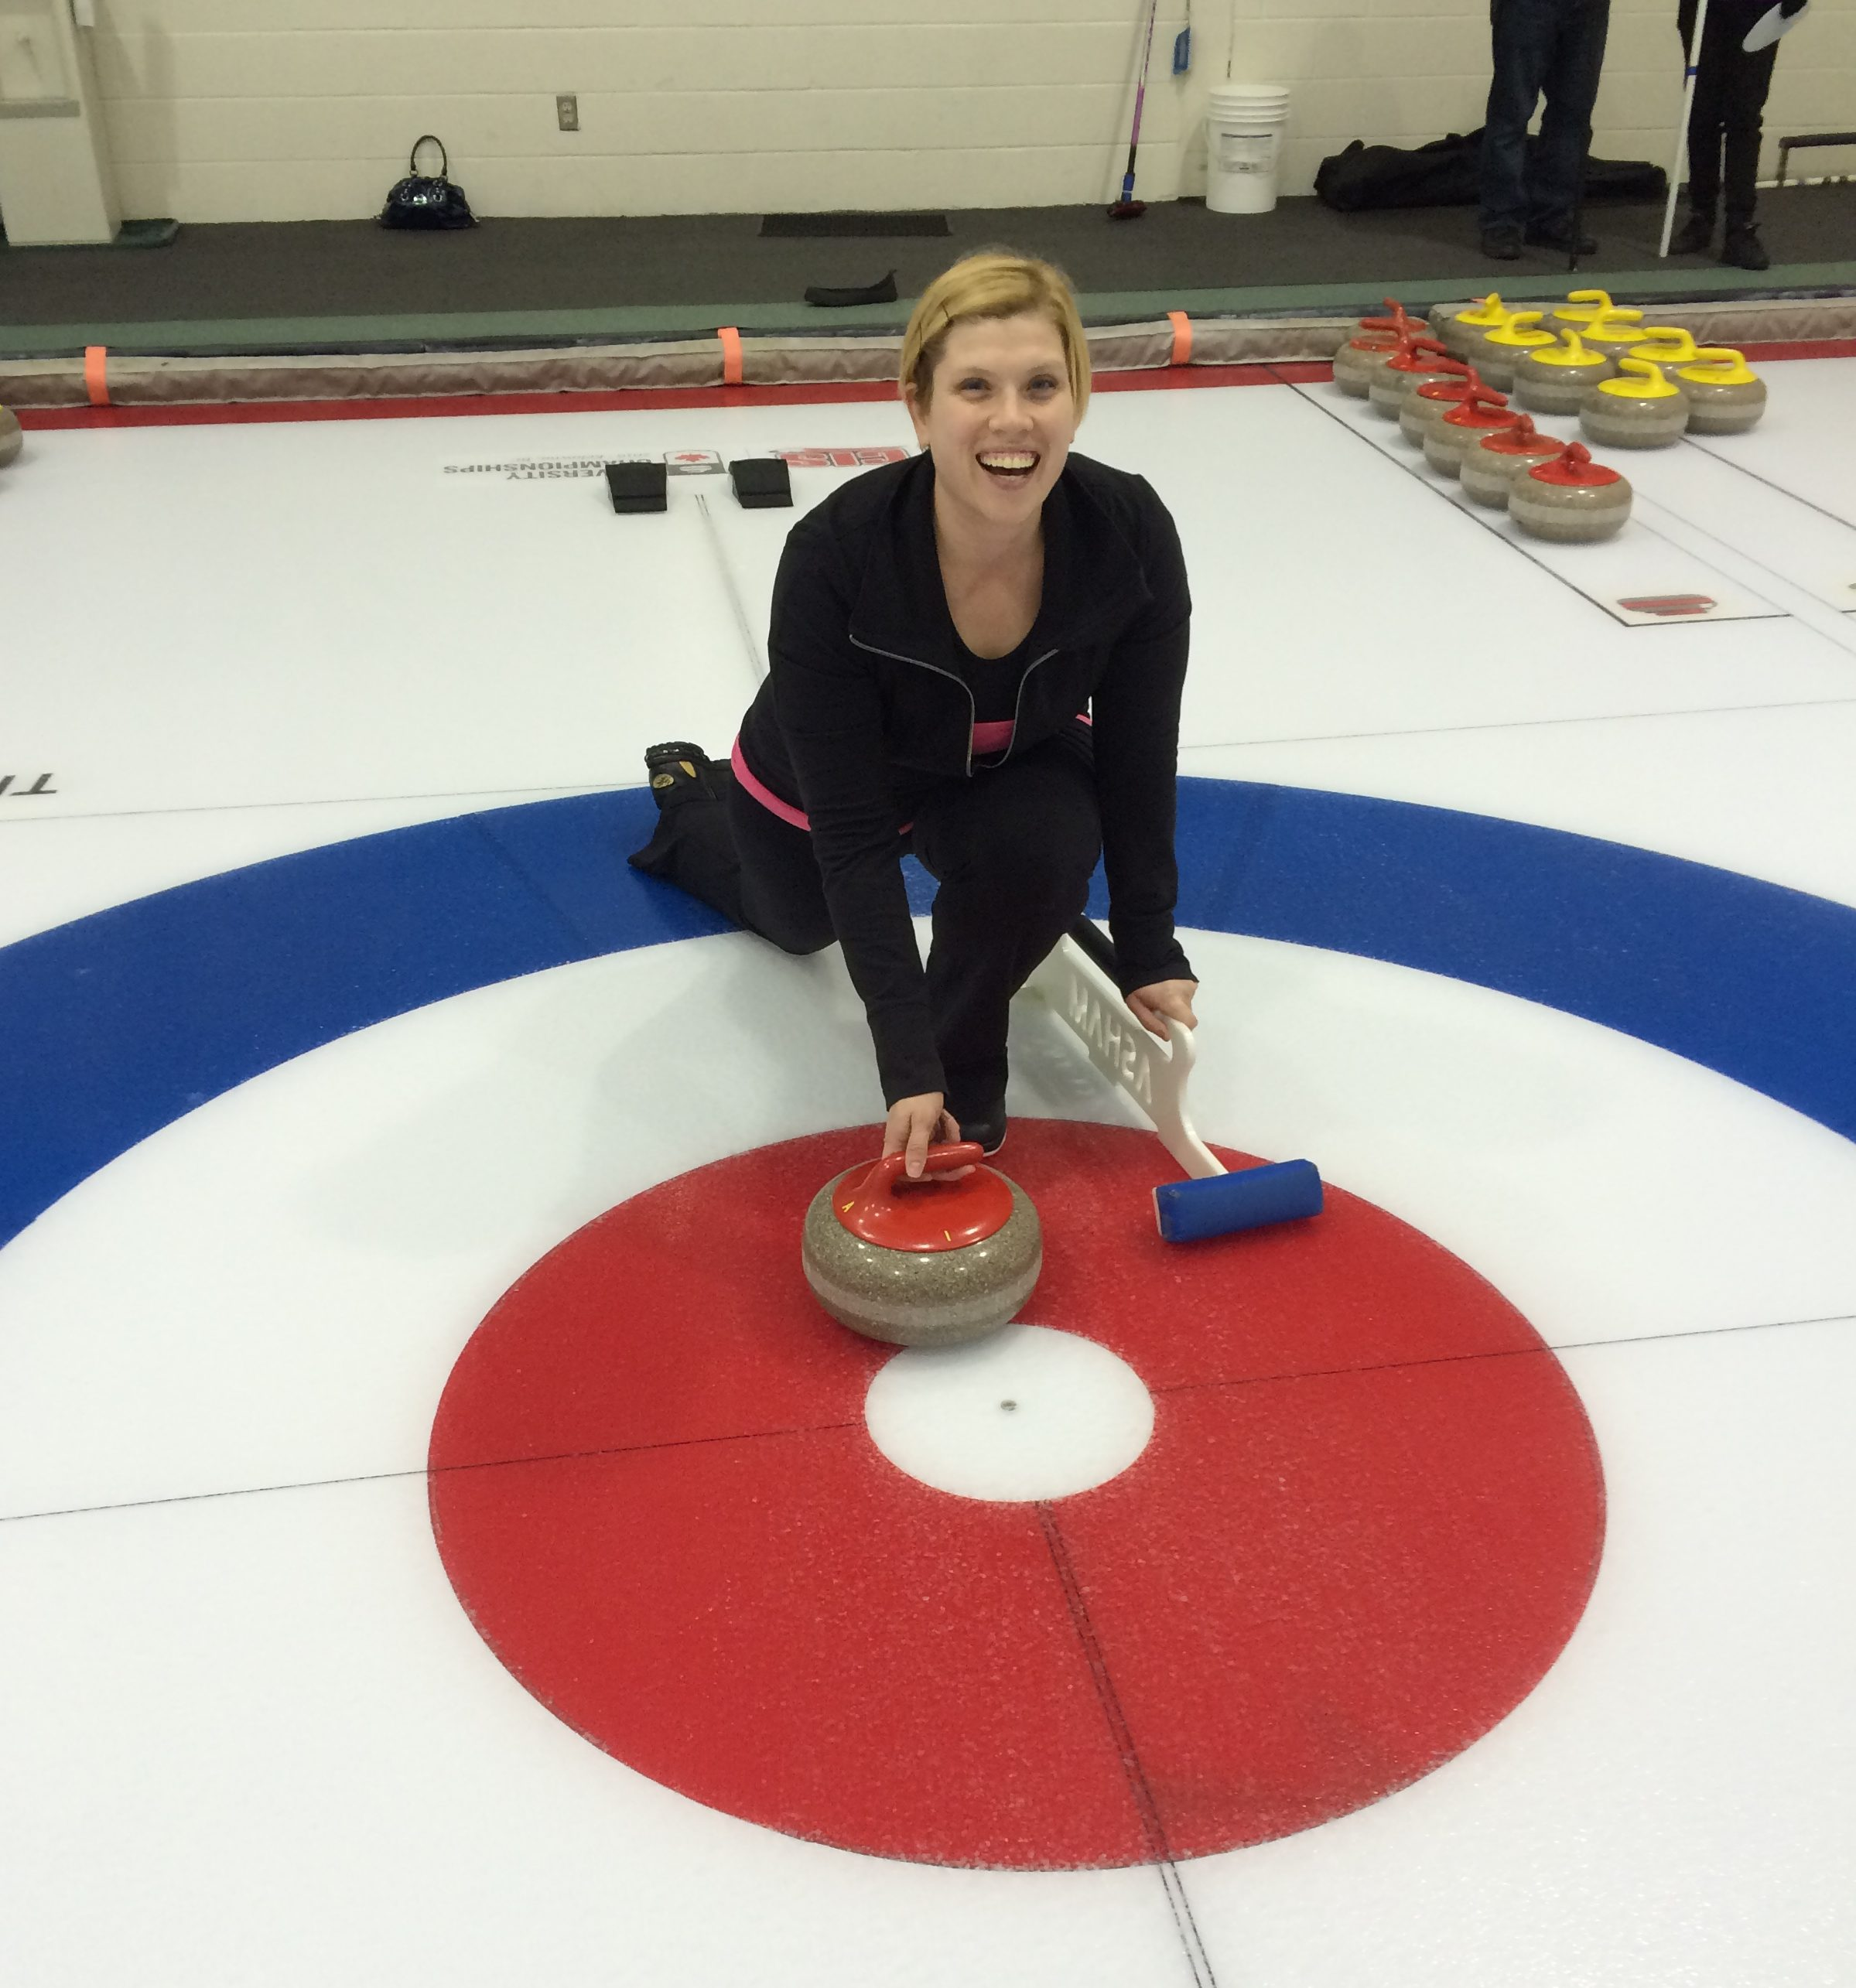 Bree Hankins Curling at arena